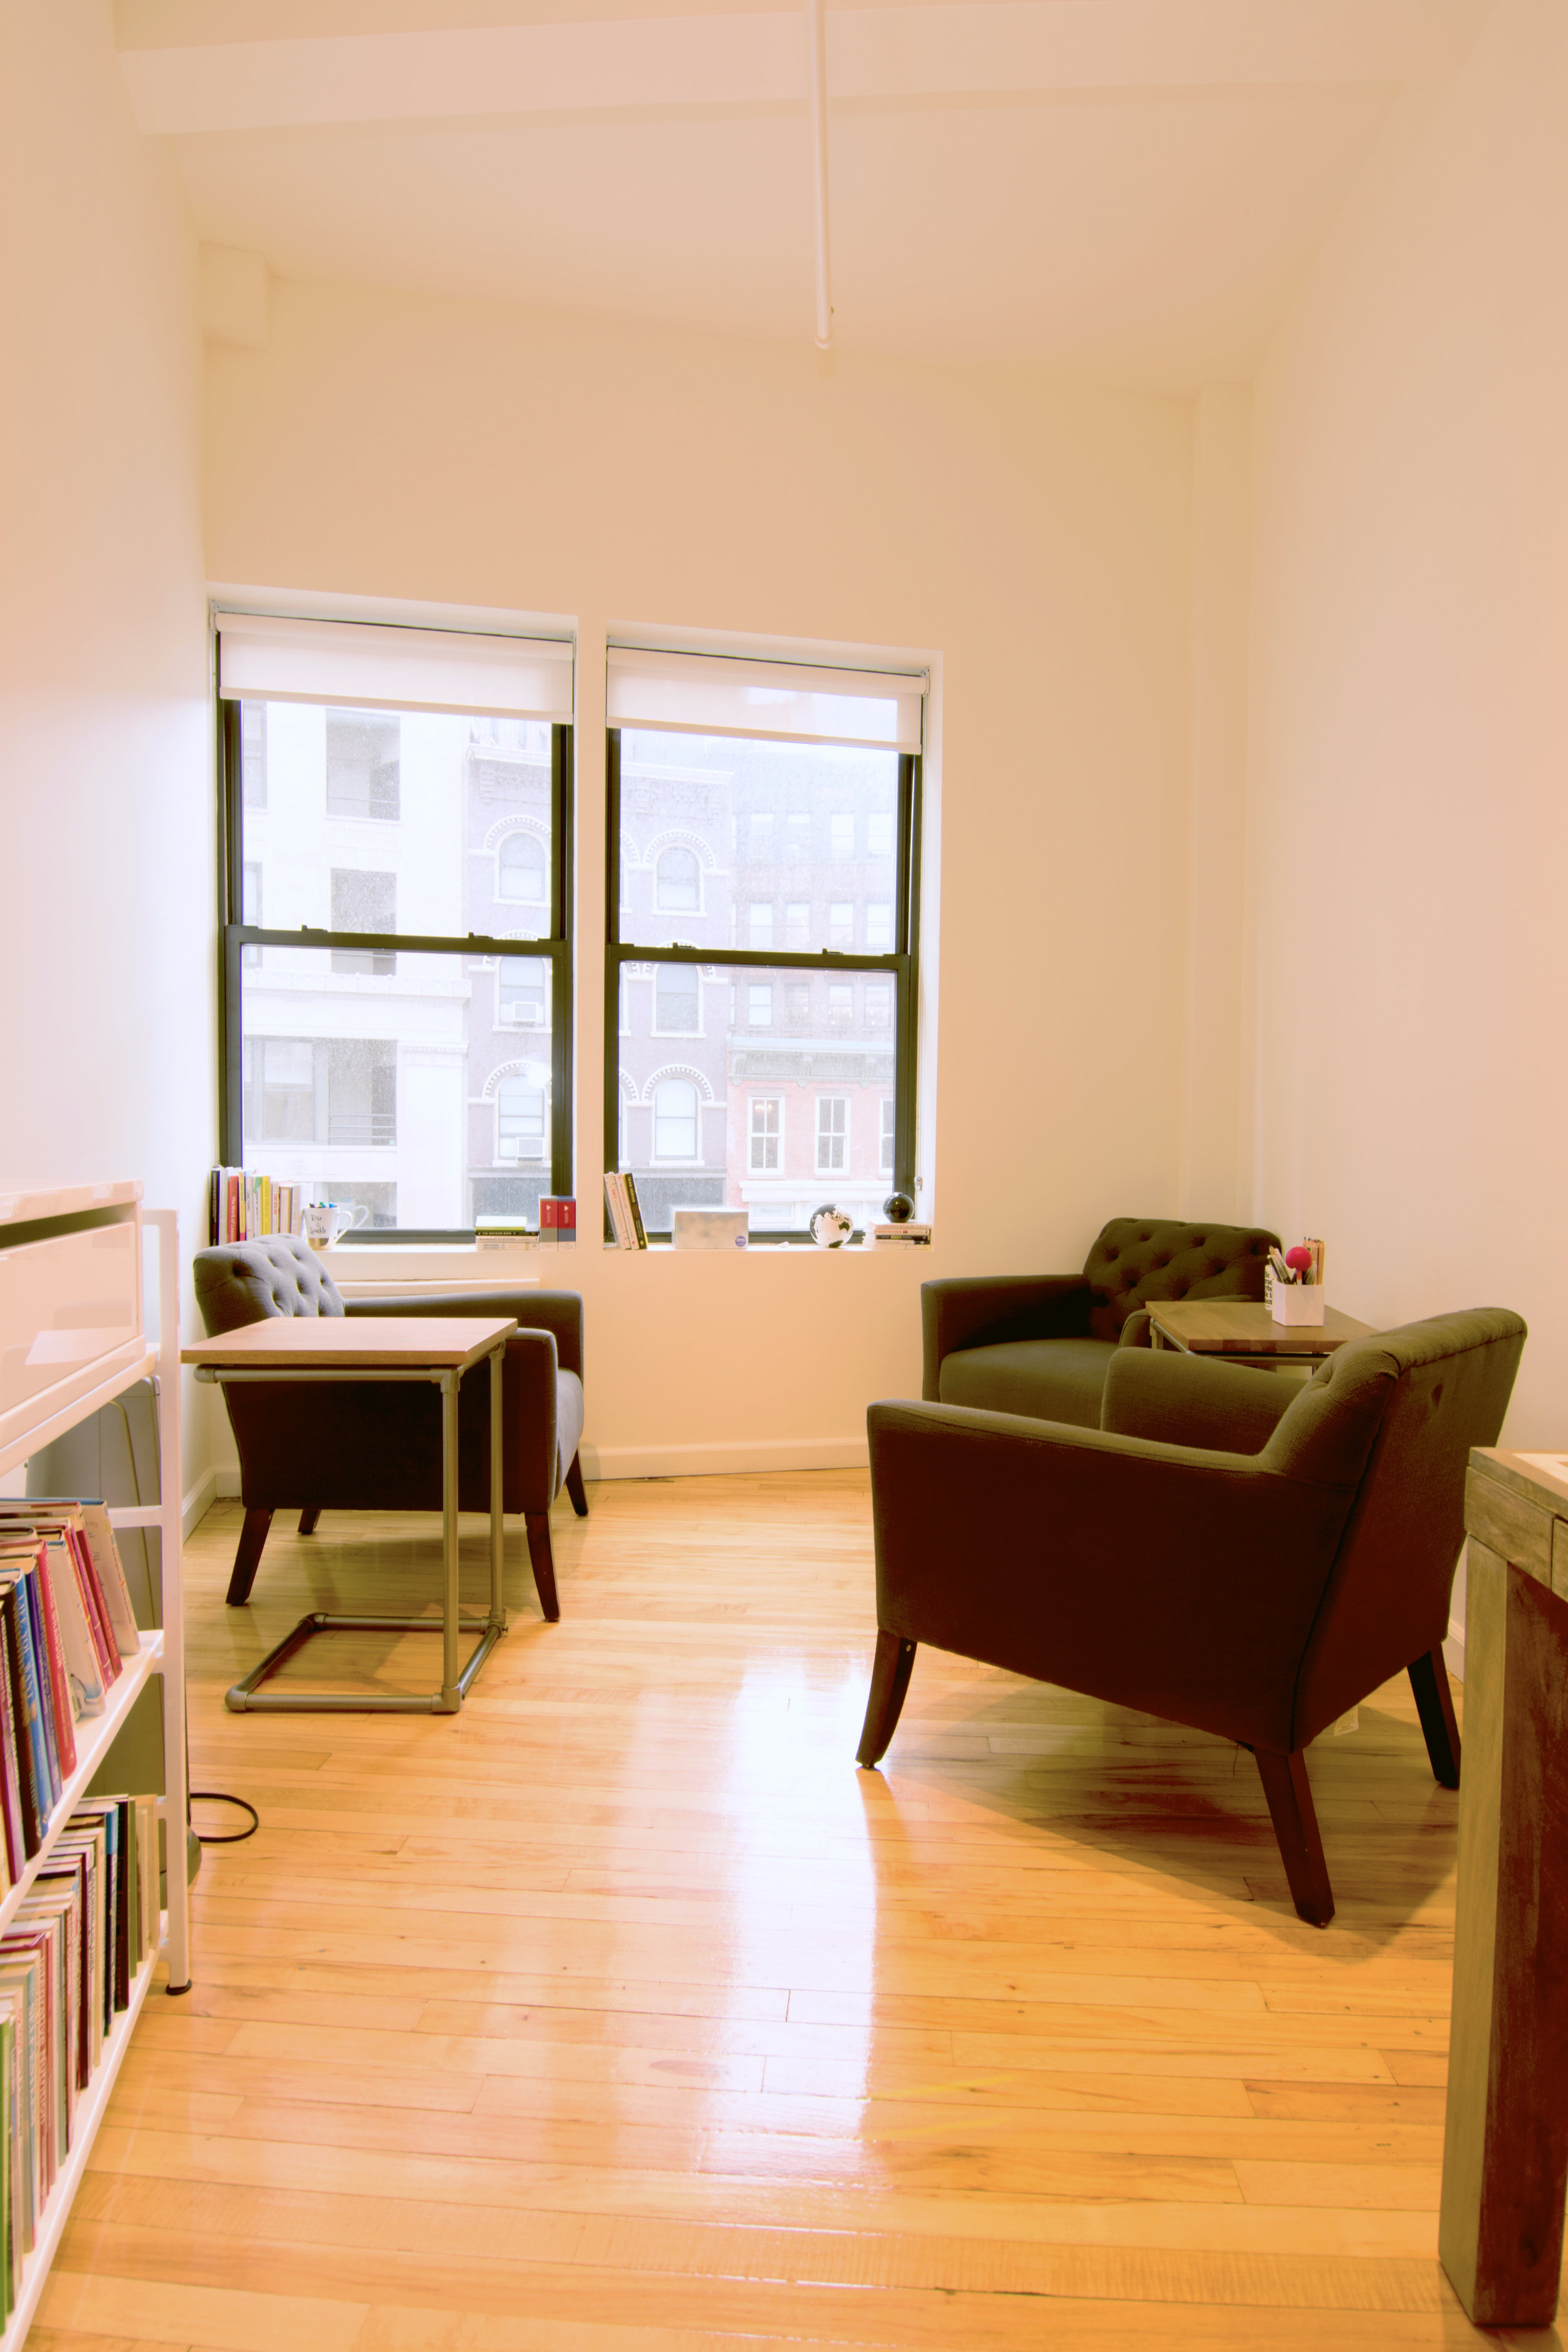 serene-offices-therapy-office-flatiron-21st-street-room-1-3-chairs.jpg